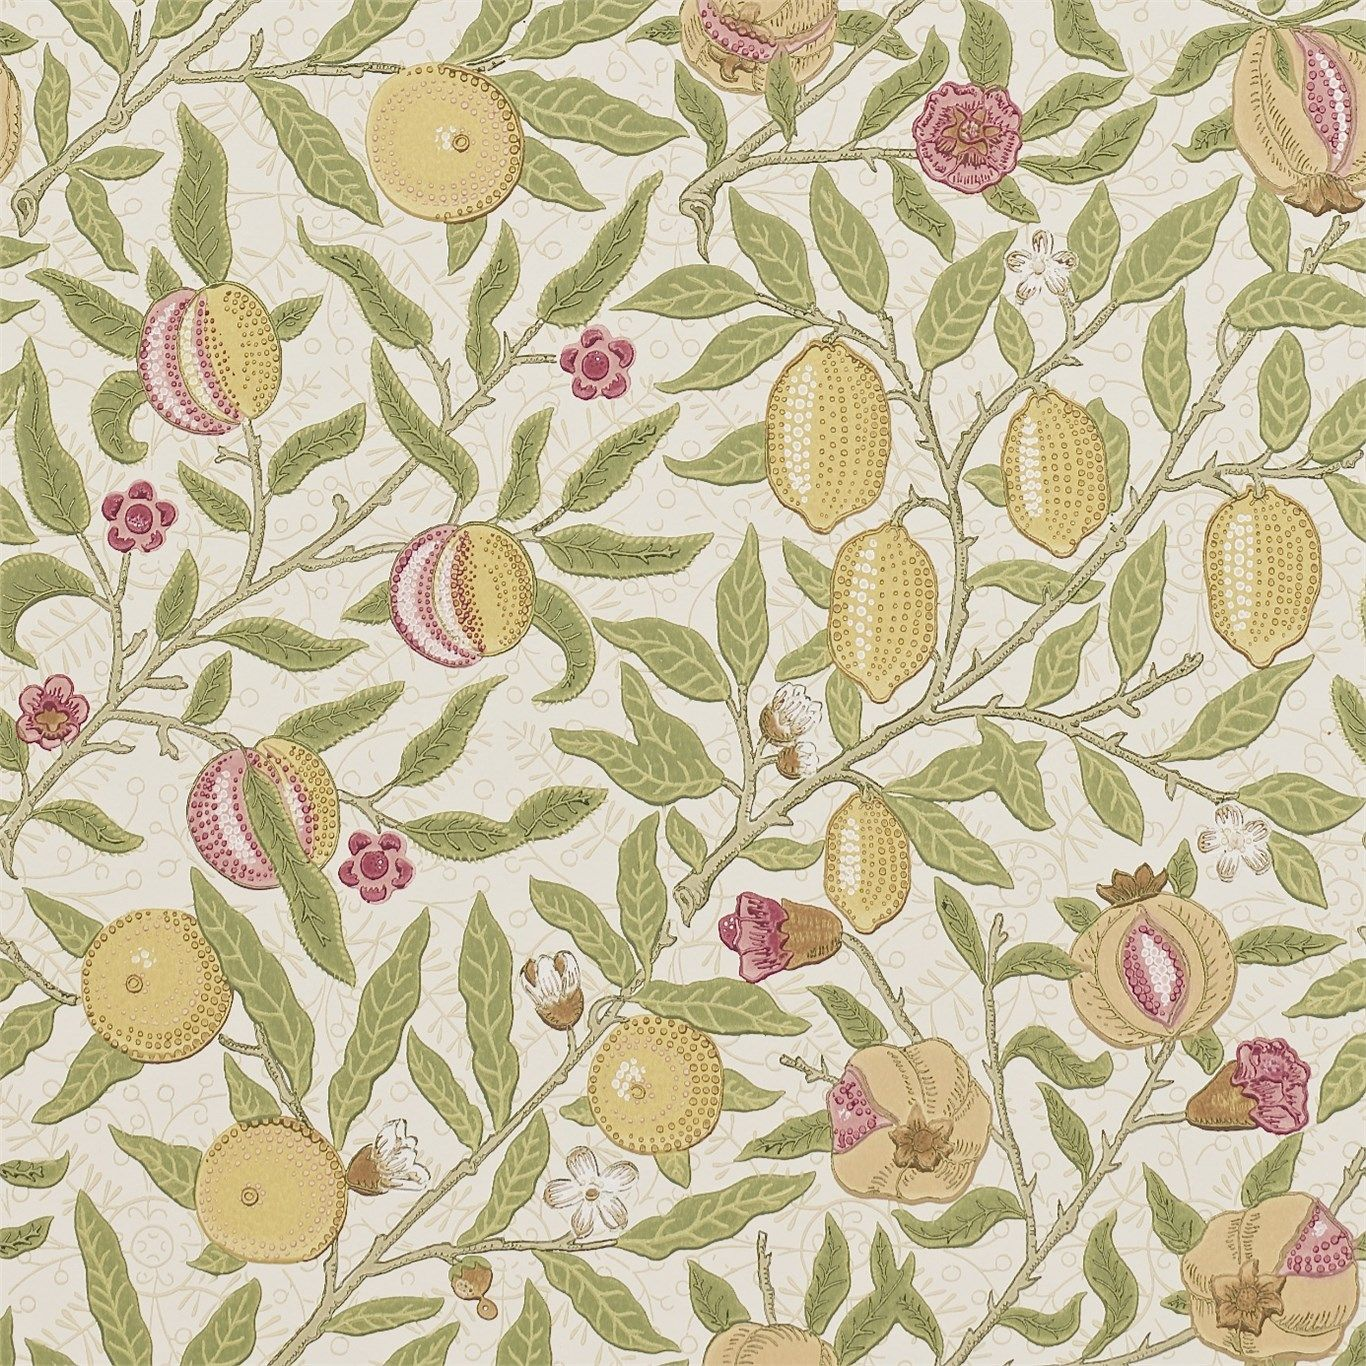 The Original Morris Co Arts And Crafts Fabrics And Wallpaper Designs By William Morris William Morris Wallpaper Morris Wallpapers William Morris Designs